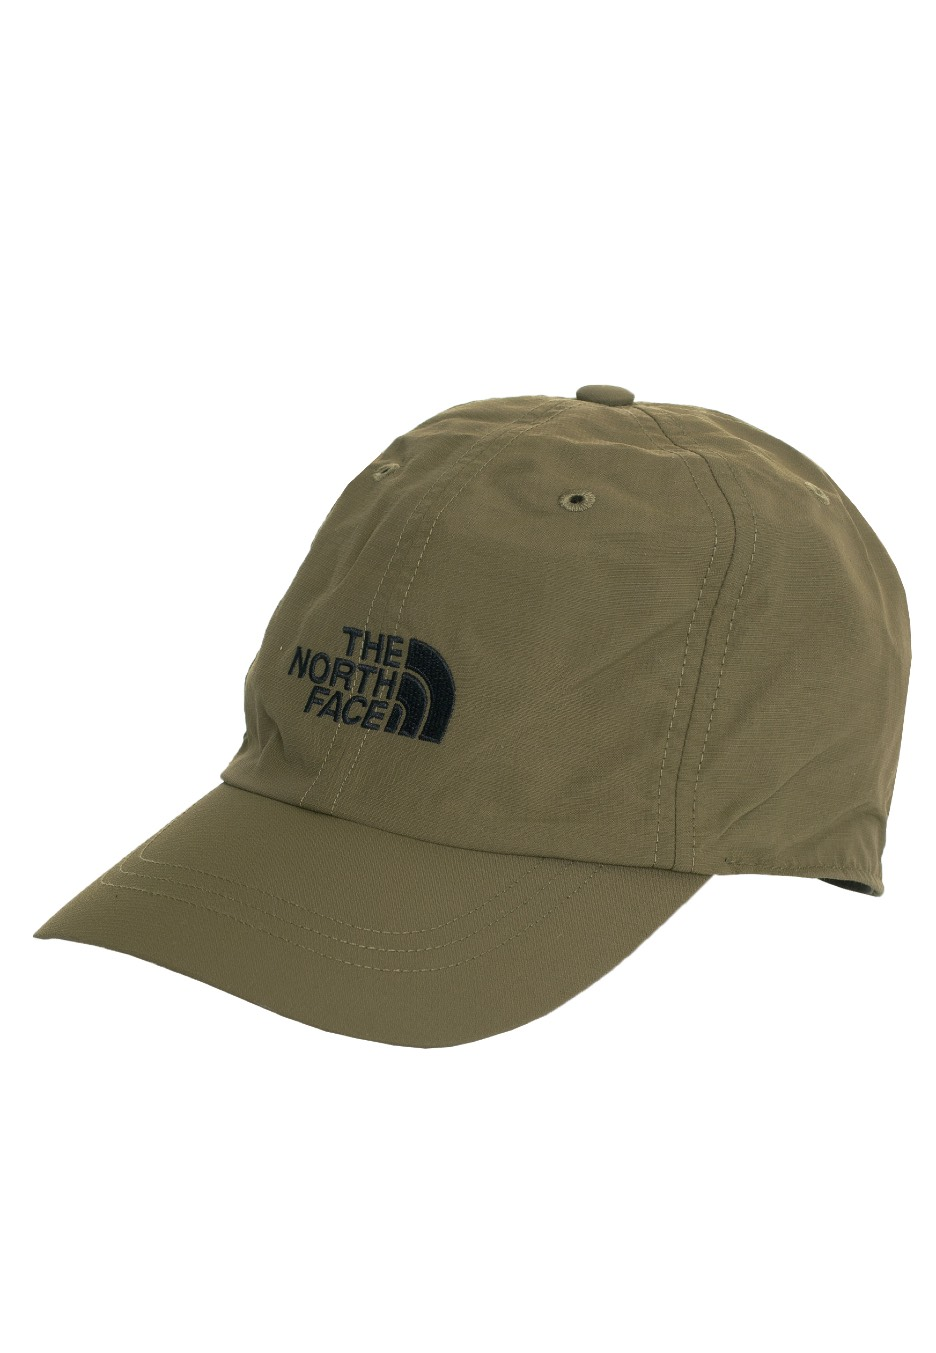 The North Face - Horizon Military Olive - Caps